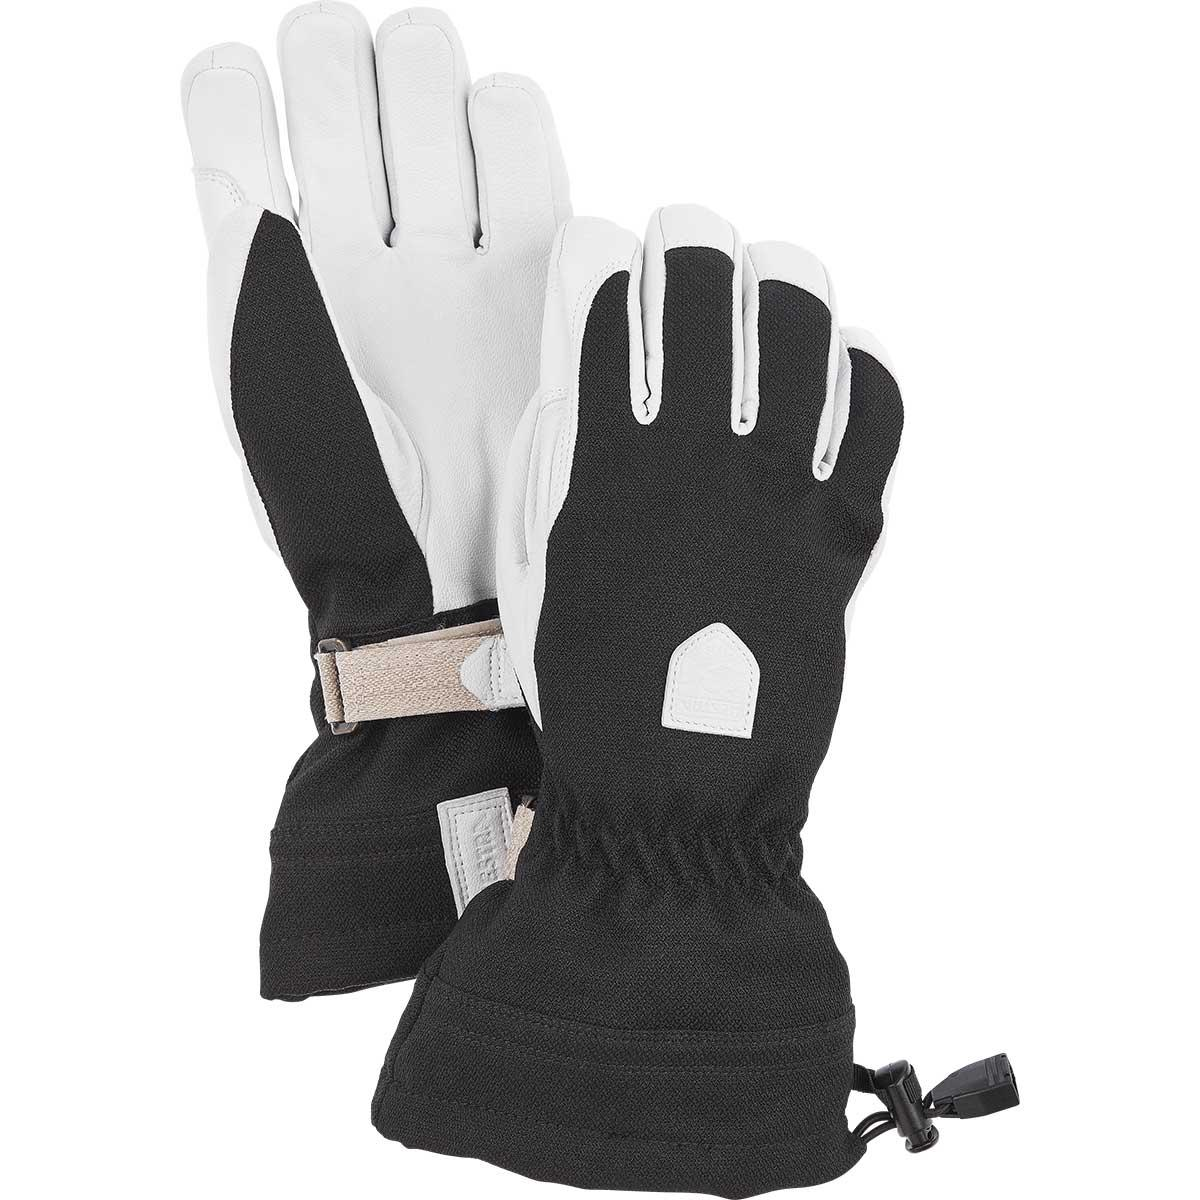 Hestra women's Patrol Gauntlet Glove in black